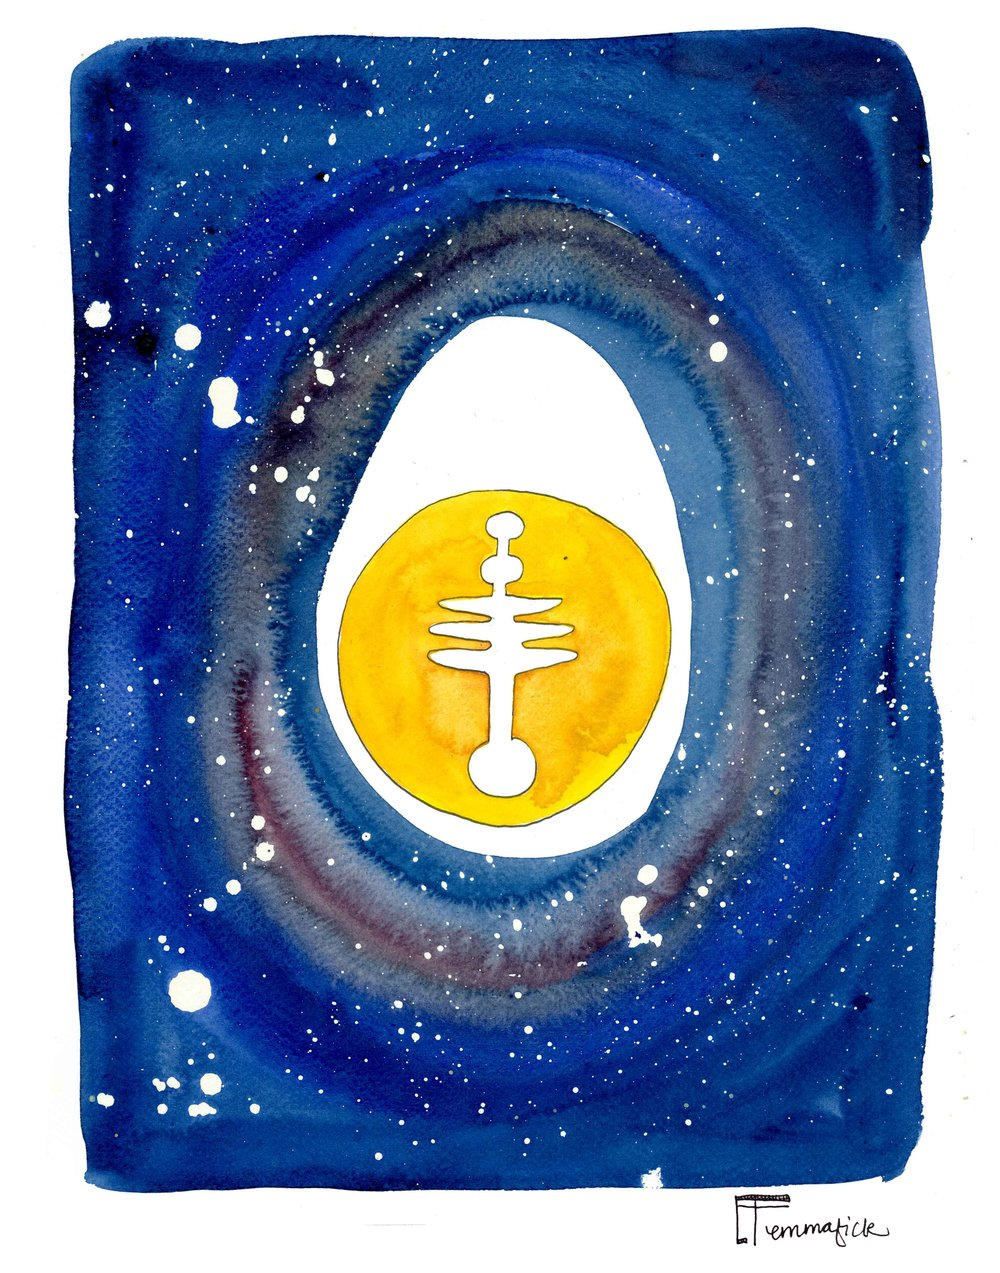 Night Egg 2 11x14.jpg